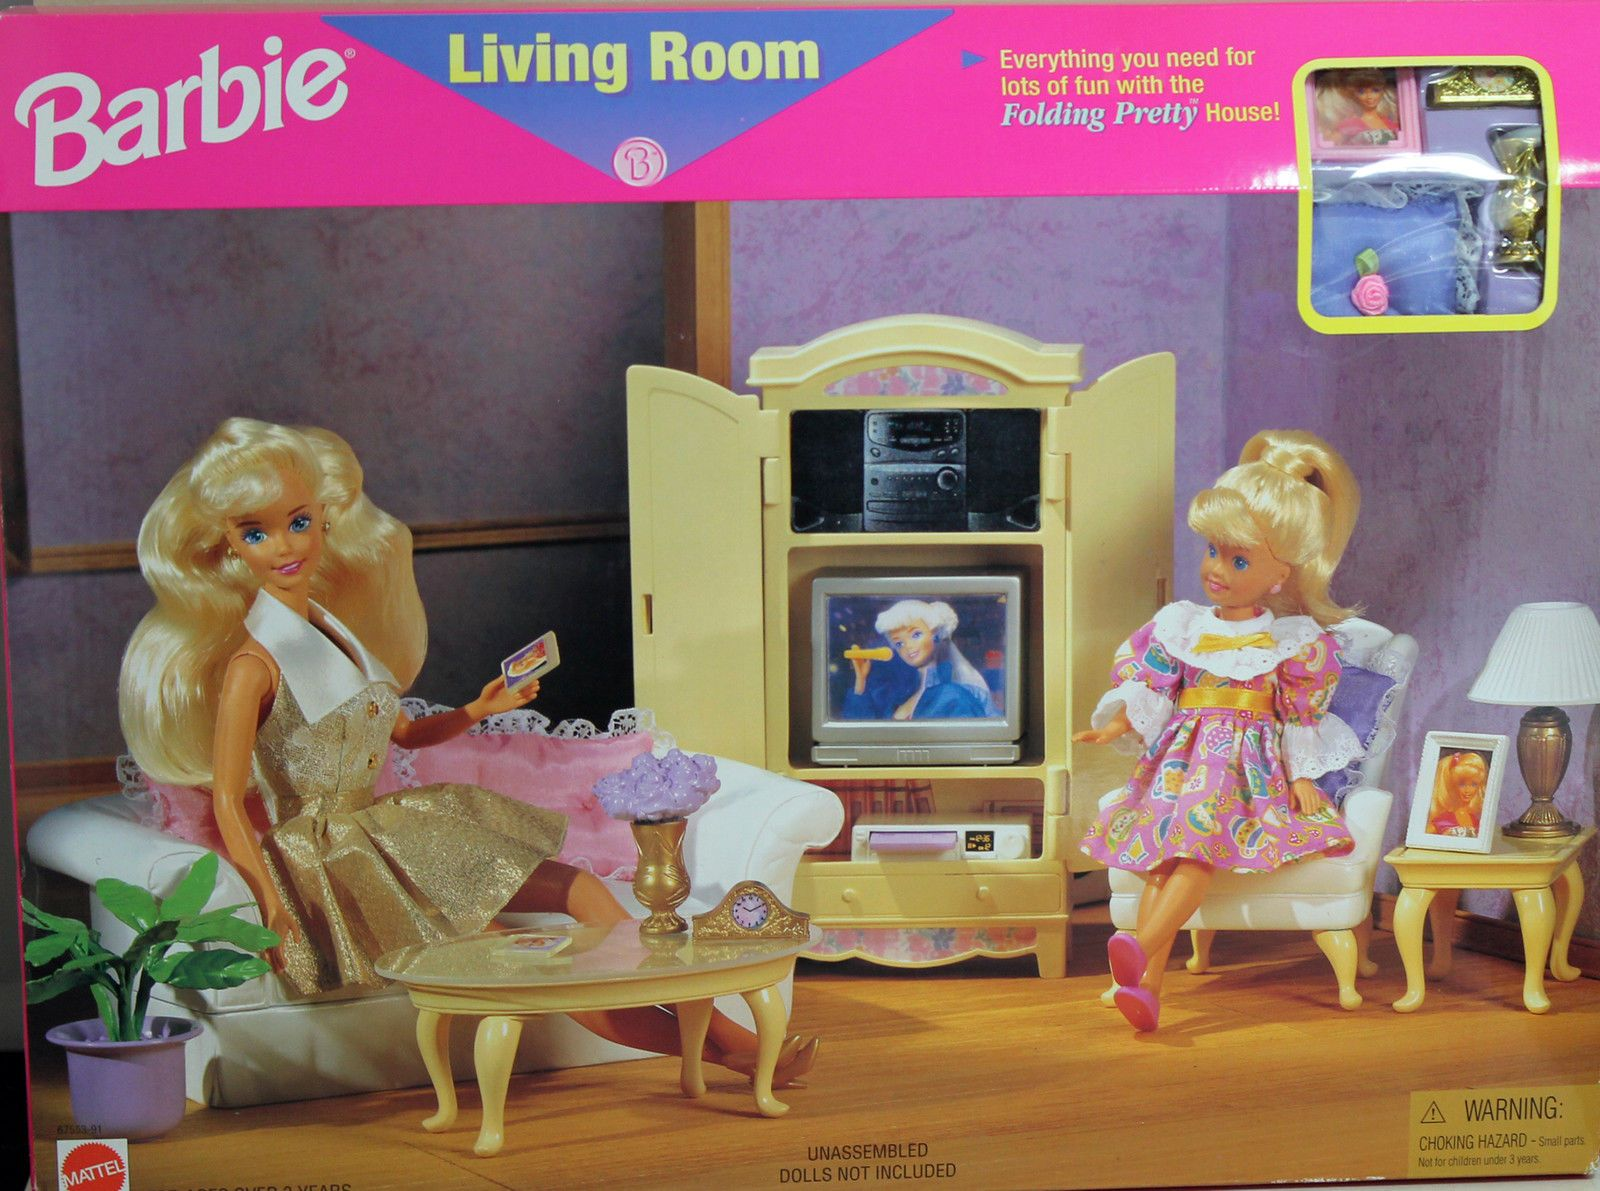 1996 Barbie Pretty Folding House Living Room Furniture Play Set 67553 91 Mattel